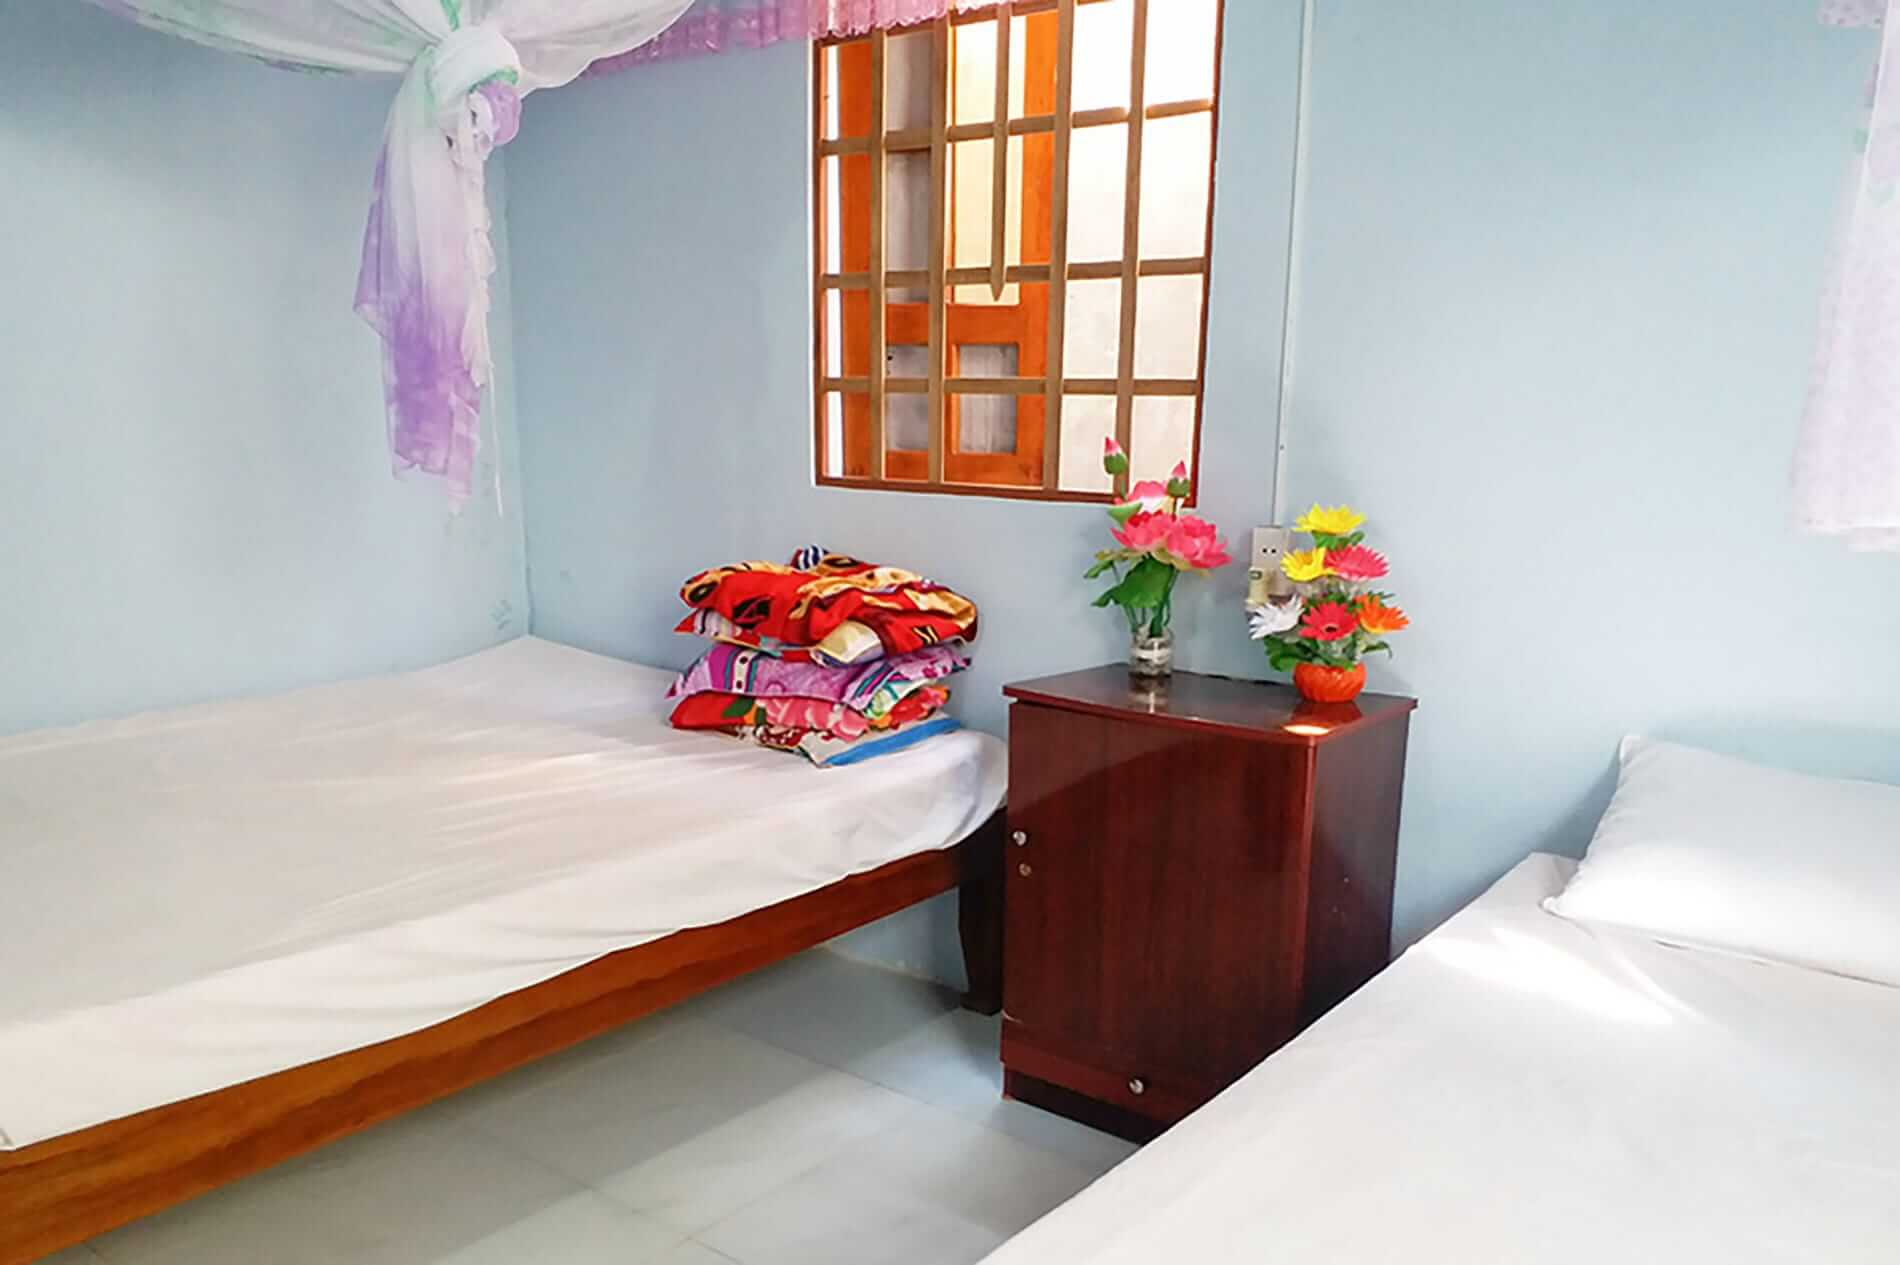 Bai Huong Homestay - Cham Island Accommodation